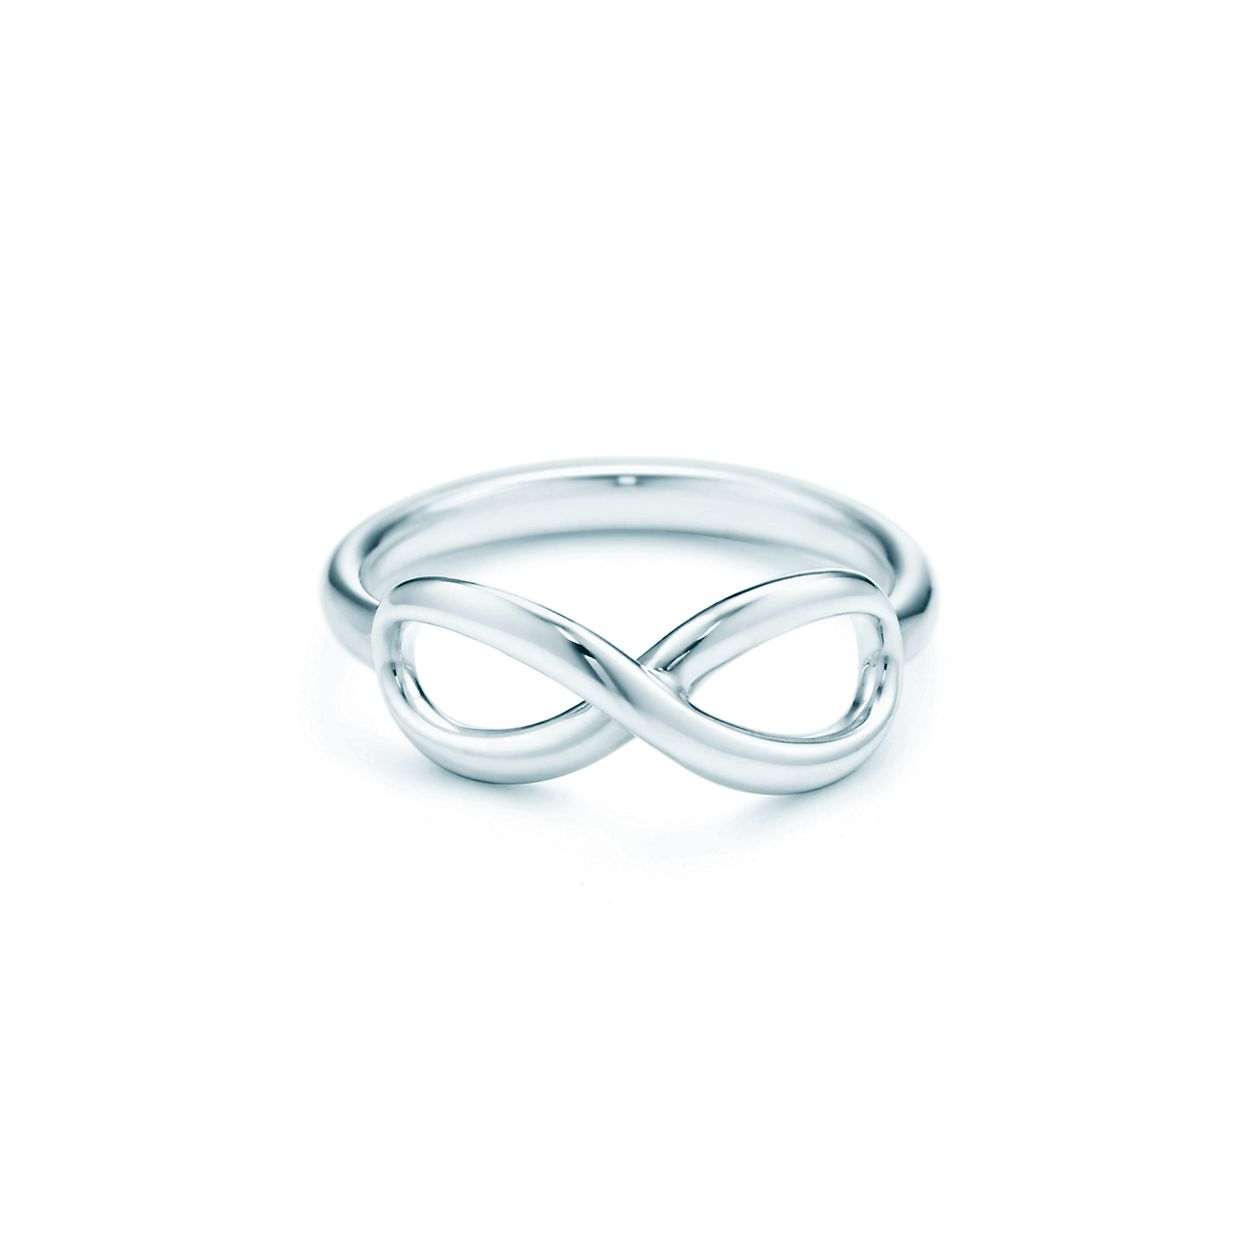 Tiffany infinity sterling silver ring tiffany co tiffany infinityring tiffany infinityring buycottarizona Choice Image